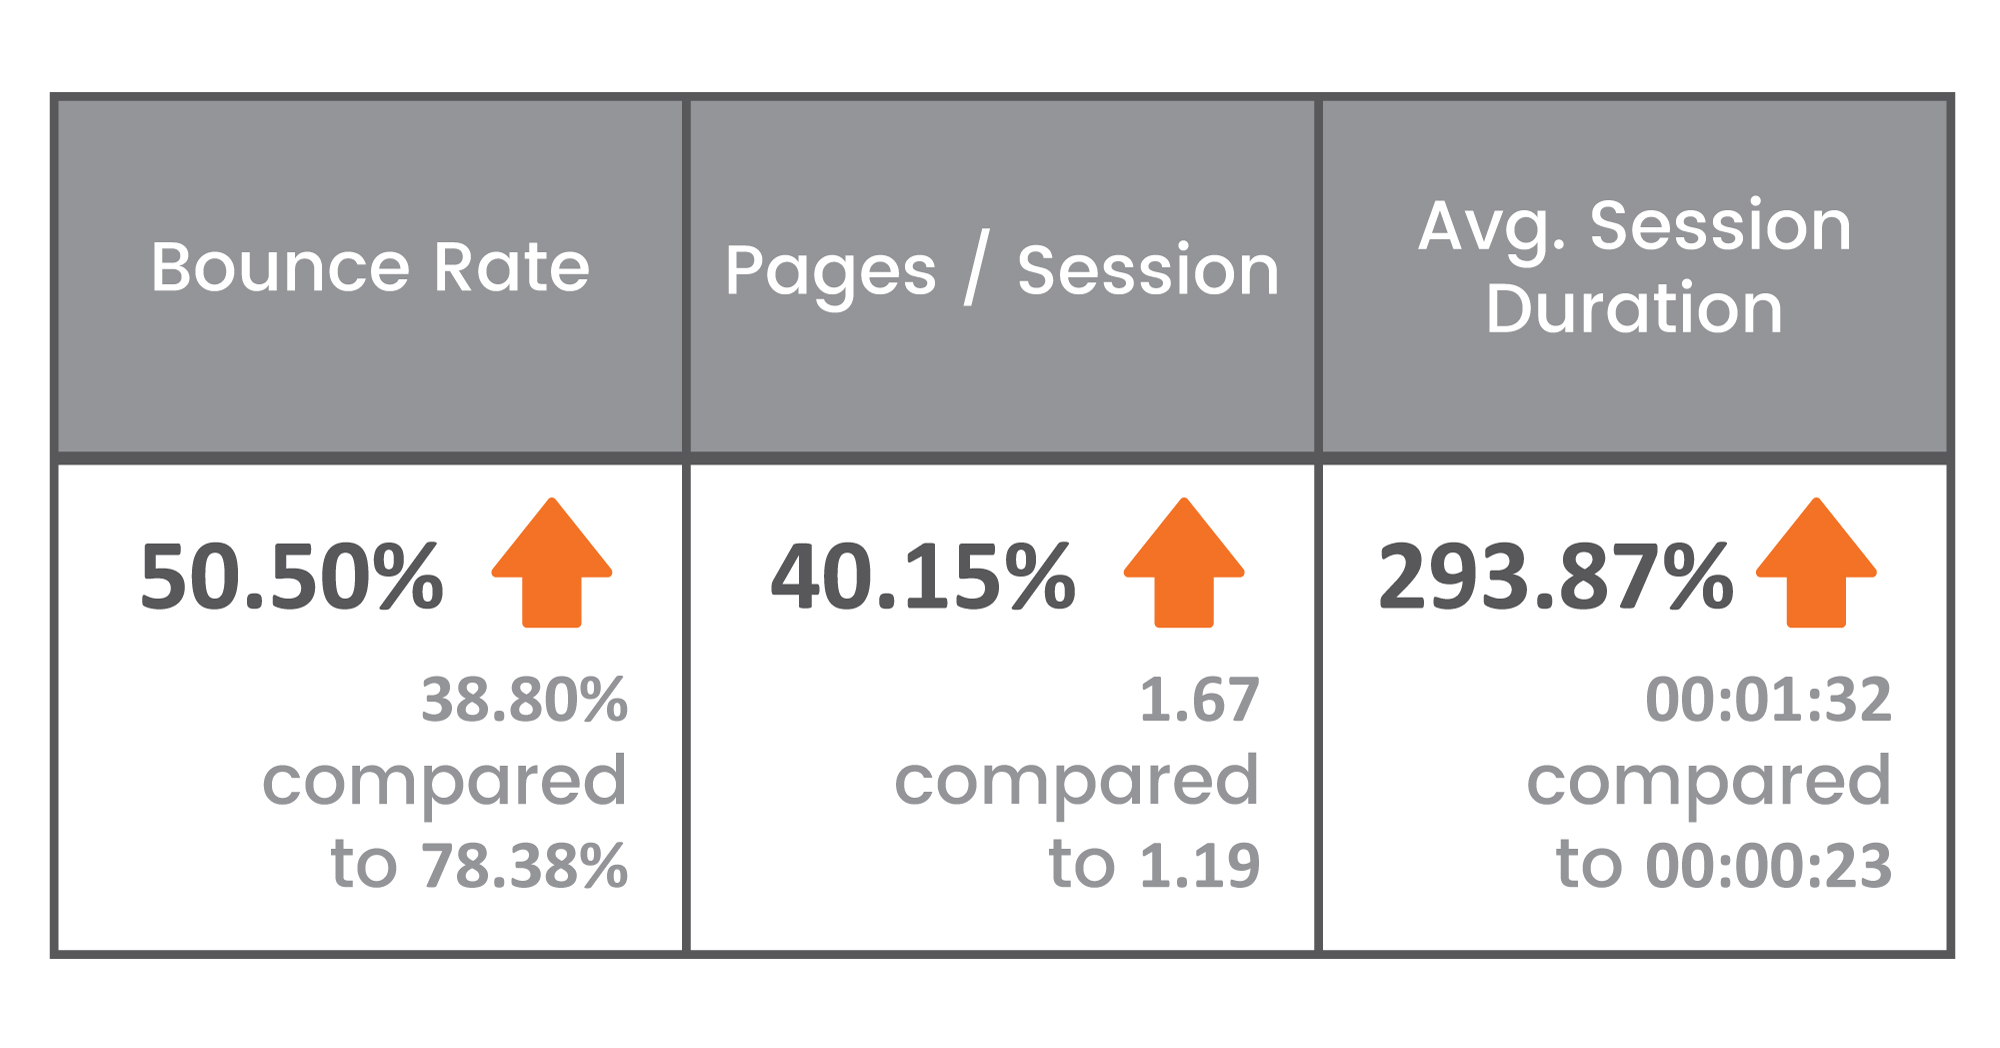 table showing improvement in Bounce Rate, Page per Session and Average Session Duration